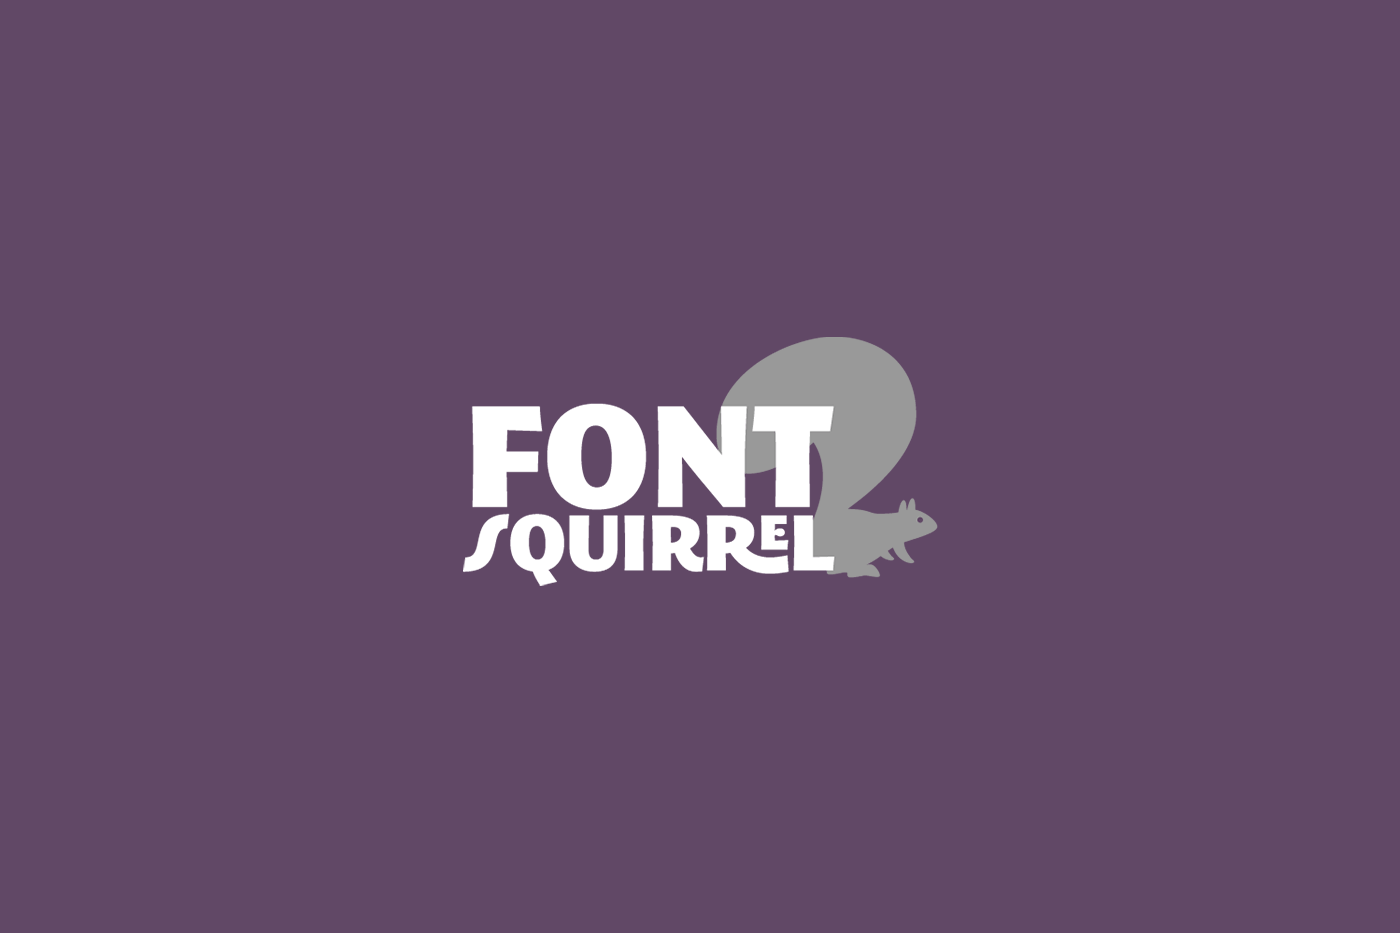 Graphic Designer Font Resource - Fontsquirrel